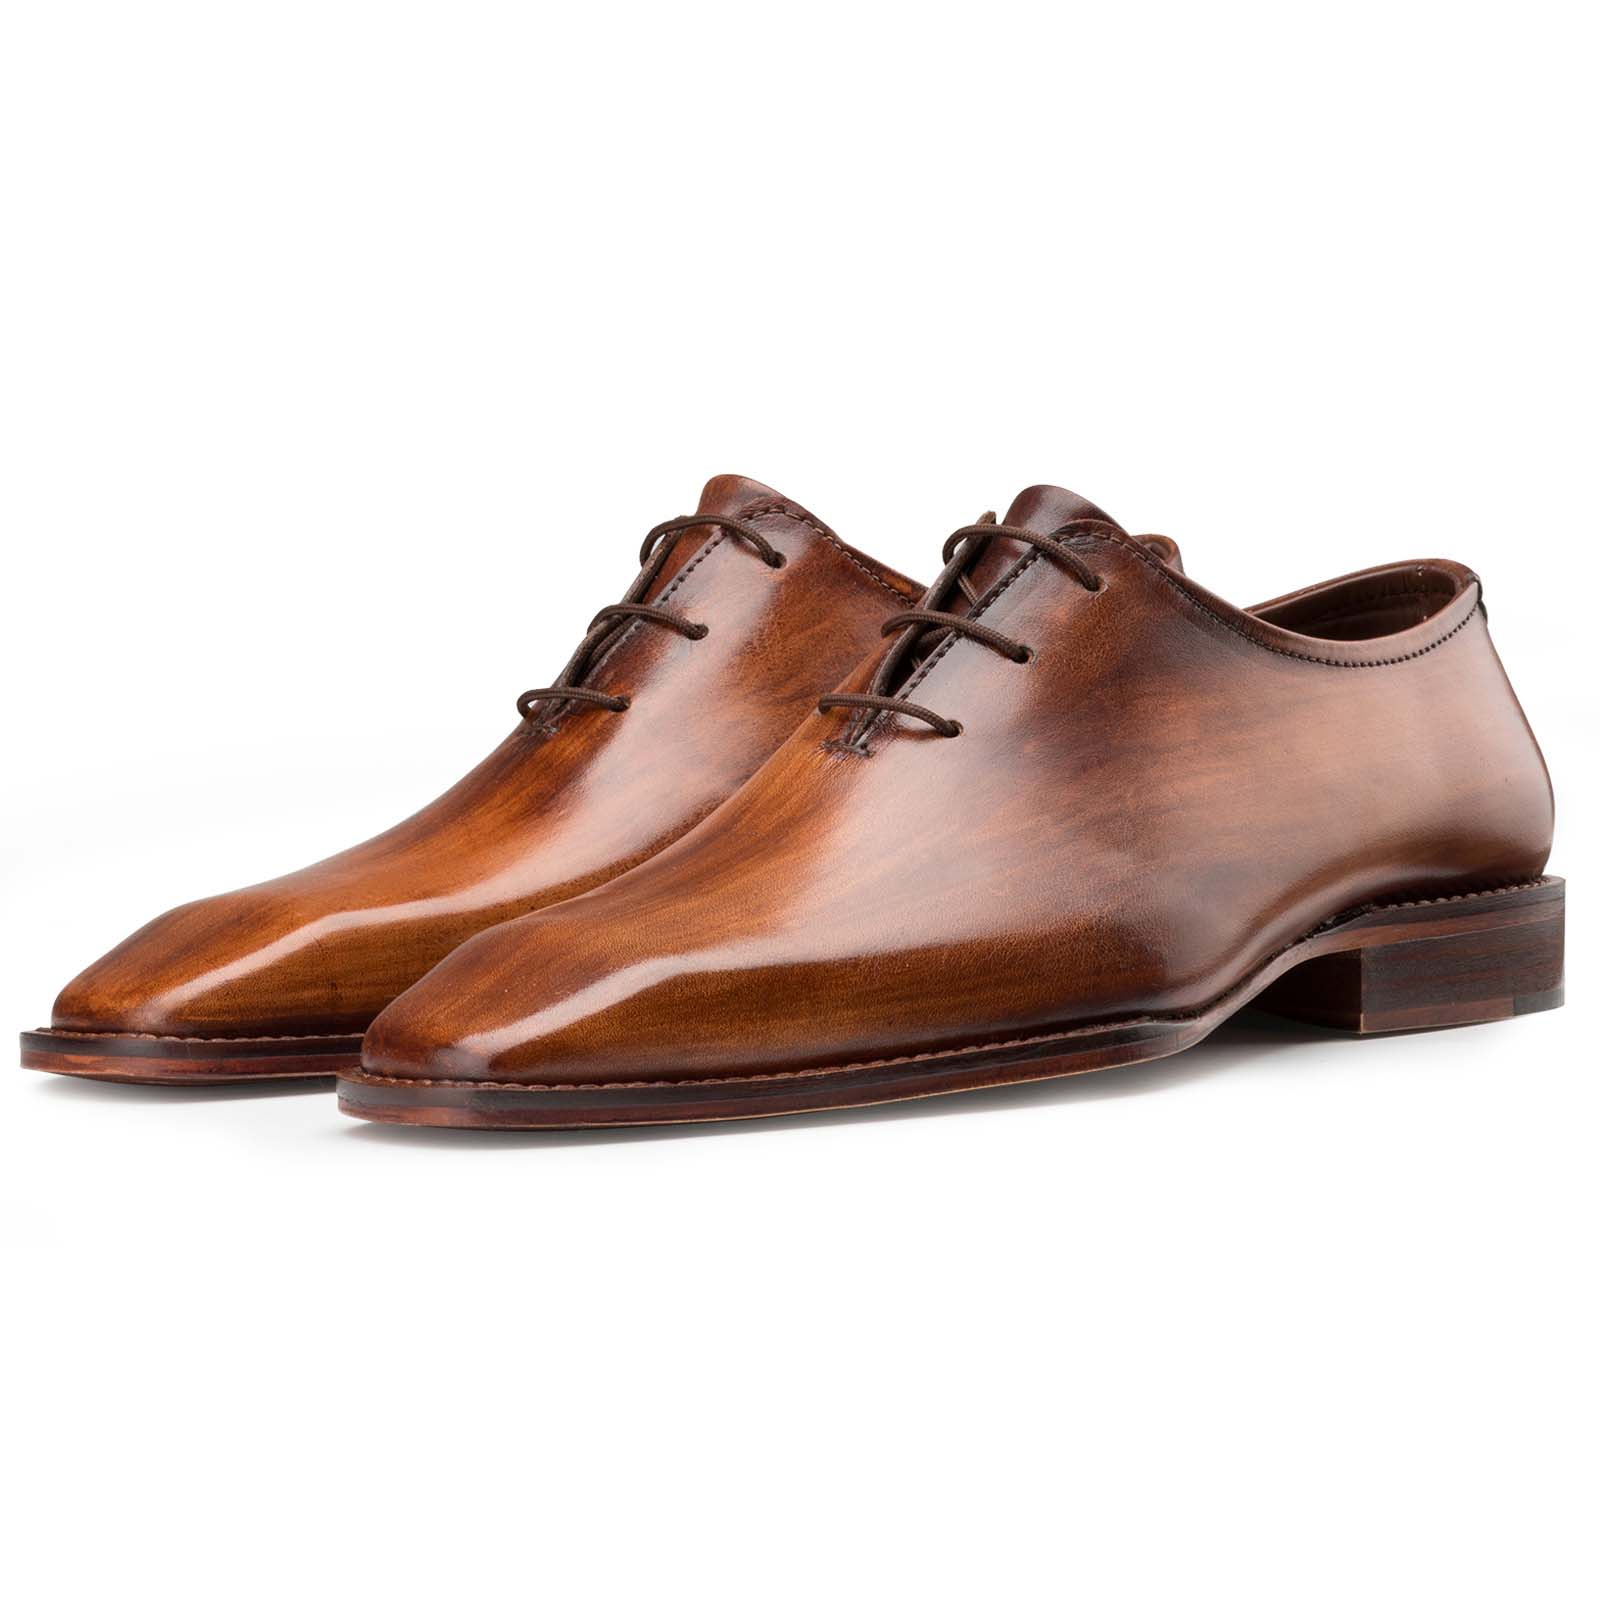 Wooden-Finish Wholecut Oxfords